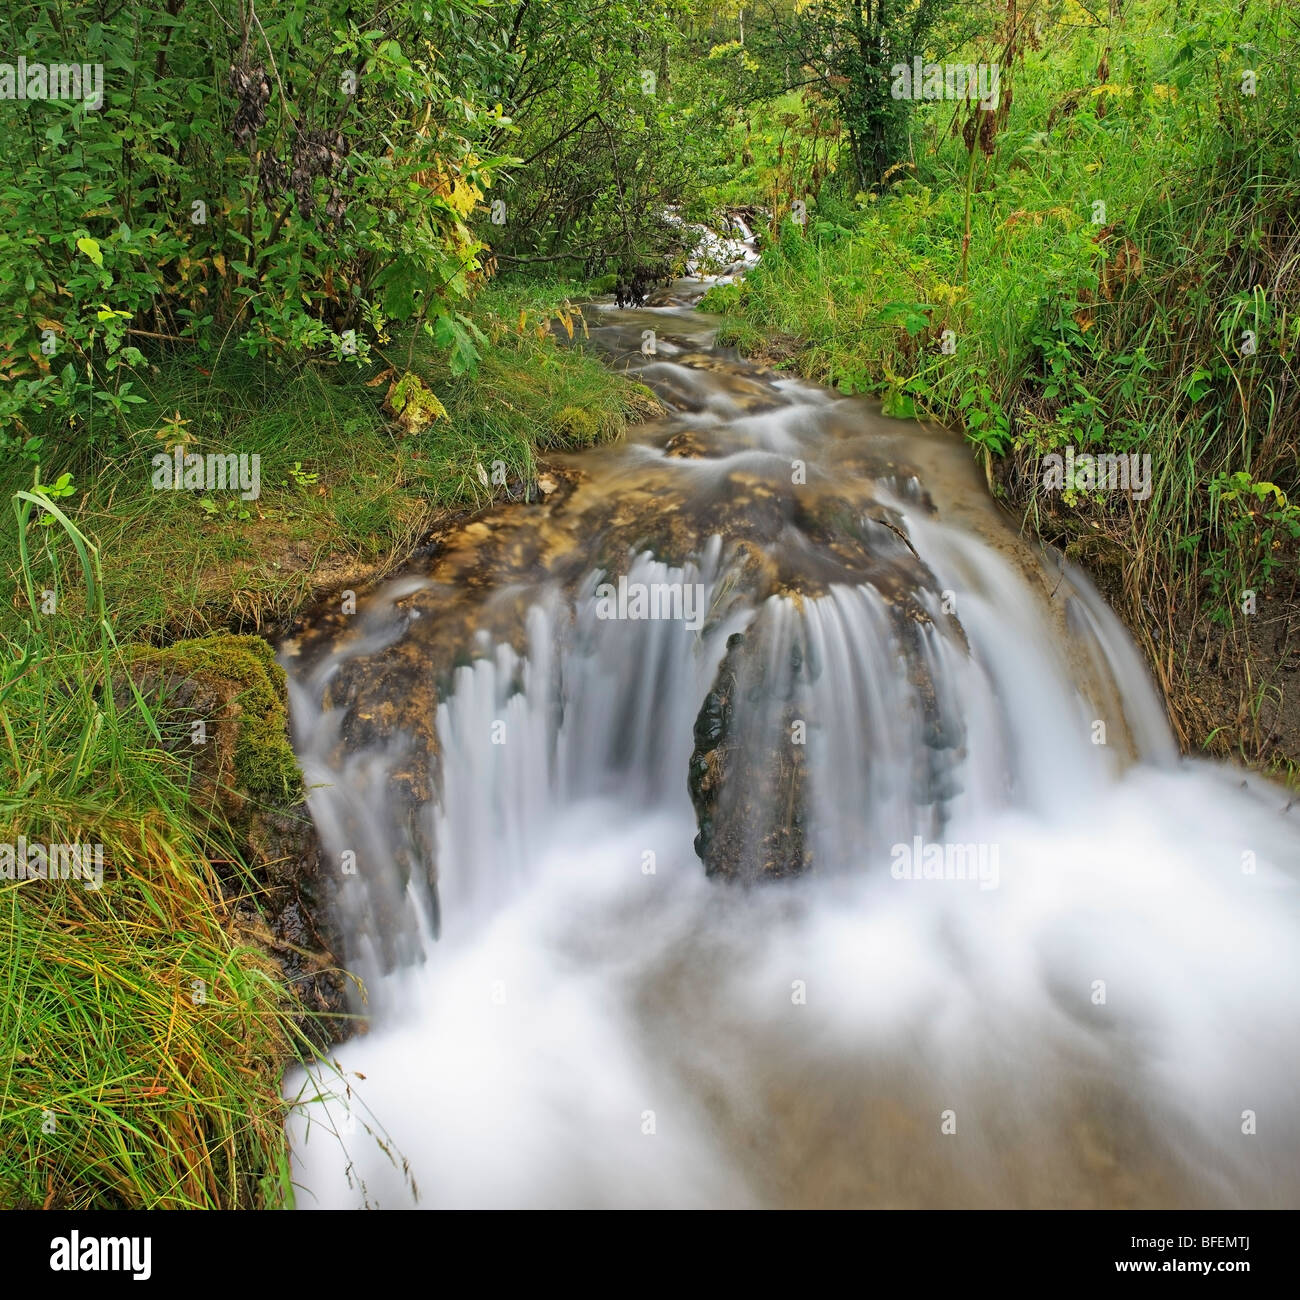 Aspen forest after a spring rain and Big Hill Creek, Big Hill Springs Provincial Park, Alberta, Canada - Stock Image